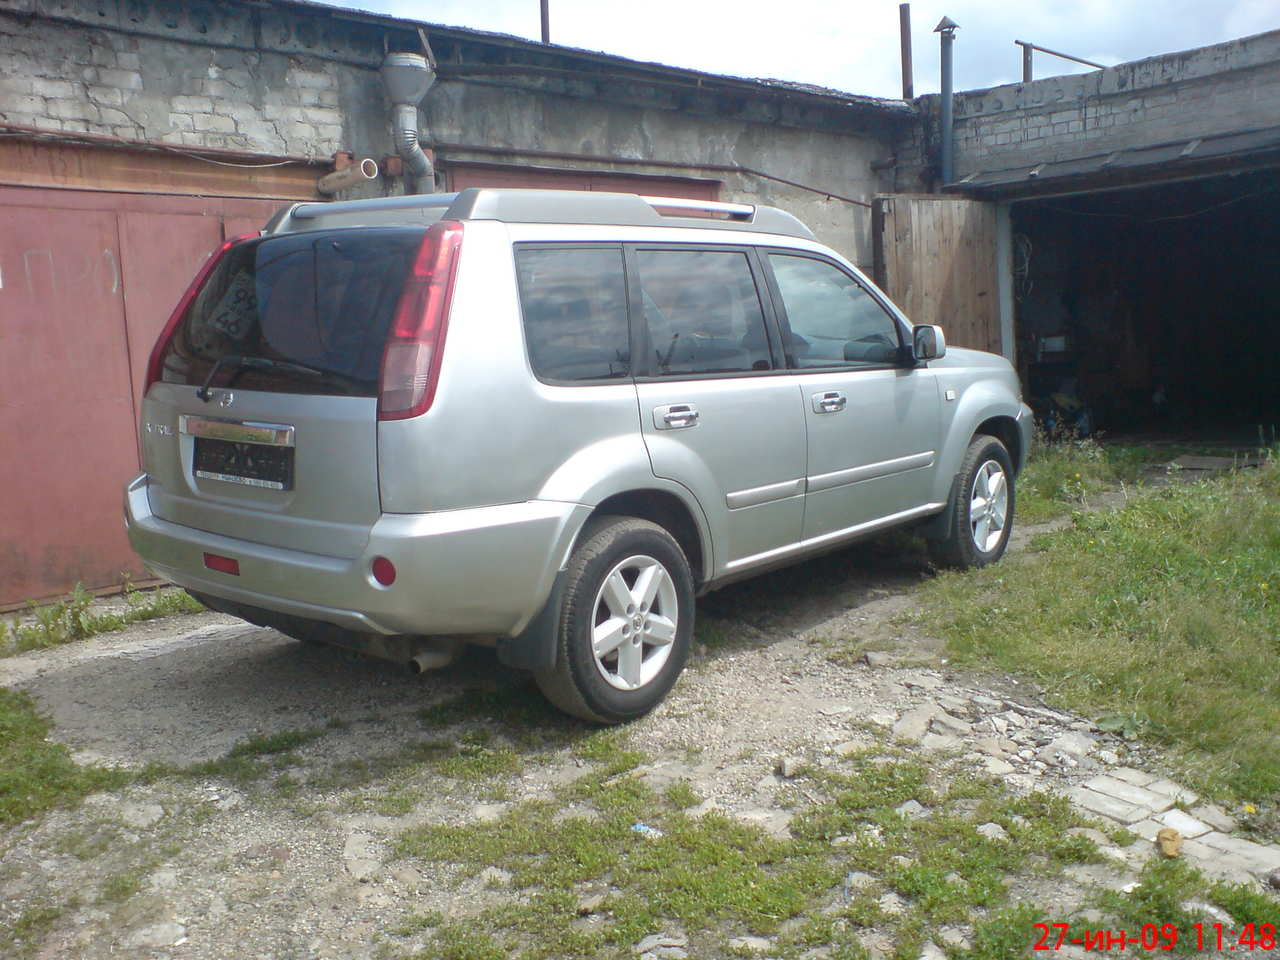 2004 nissan x trail photos 2 5 gasoline manual for sale. Black Bedroom Furniture Sets. Home Design Ideas